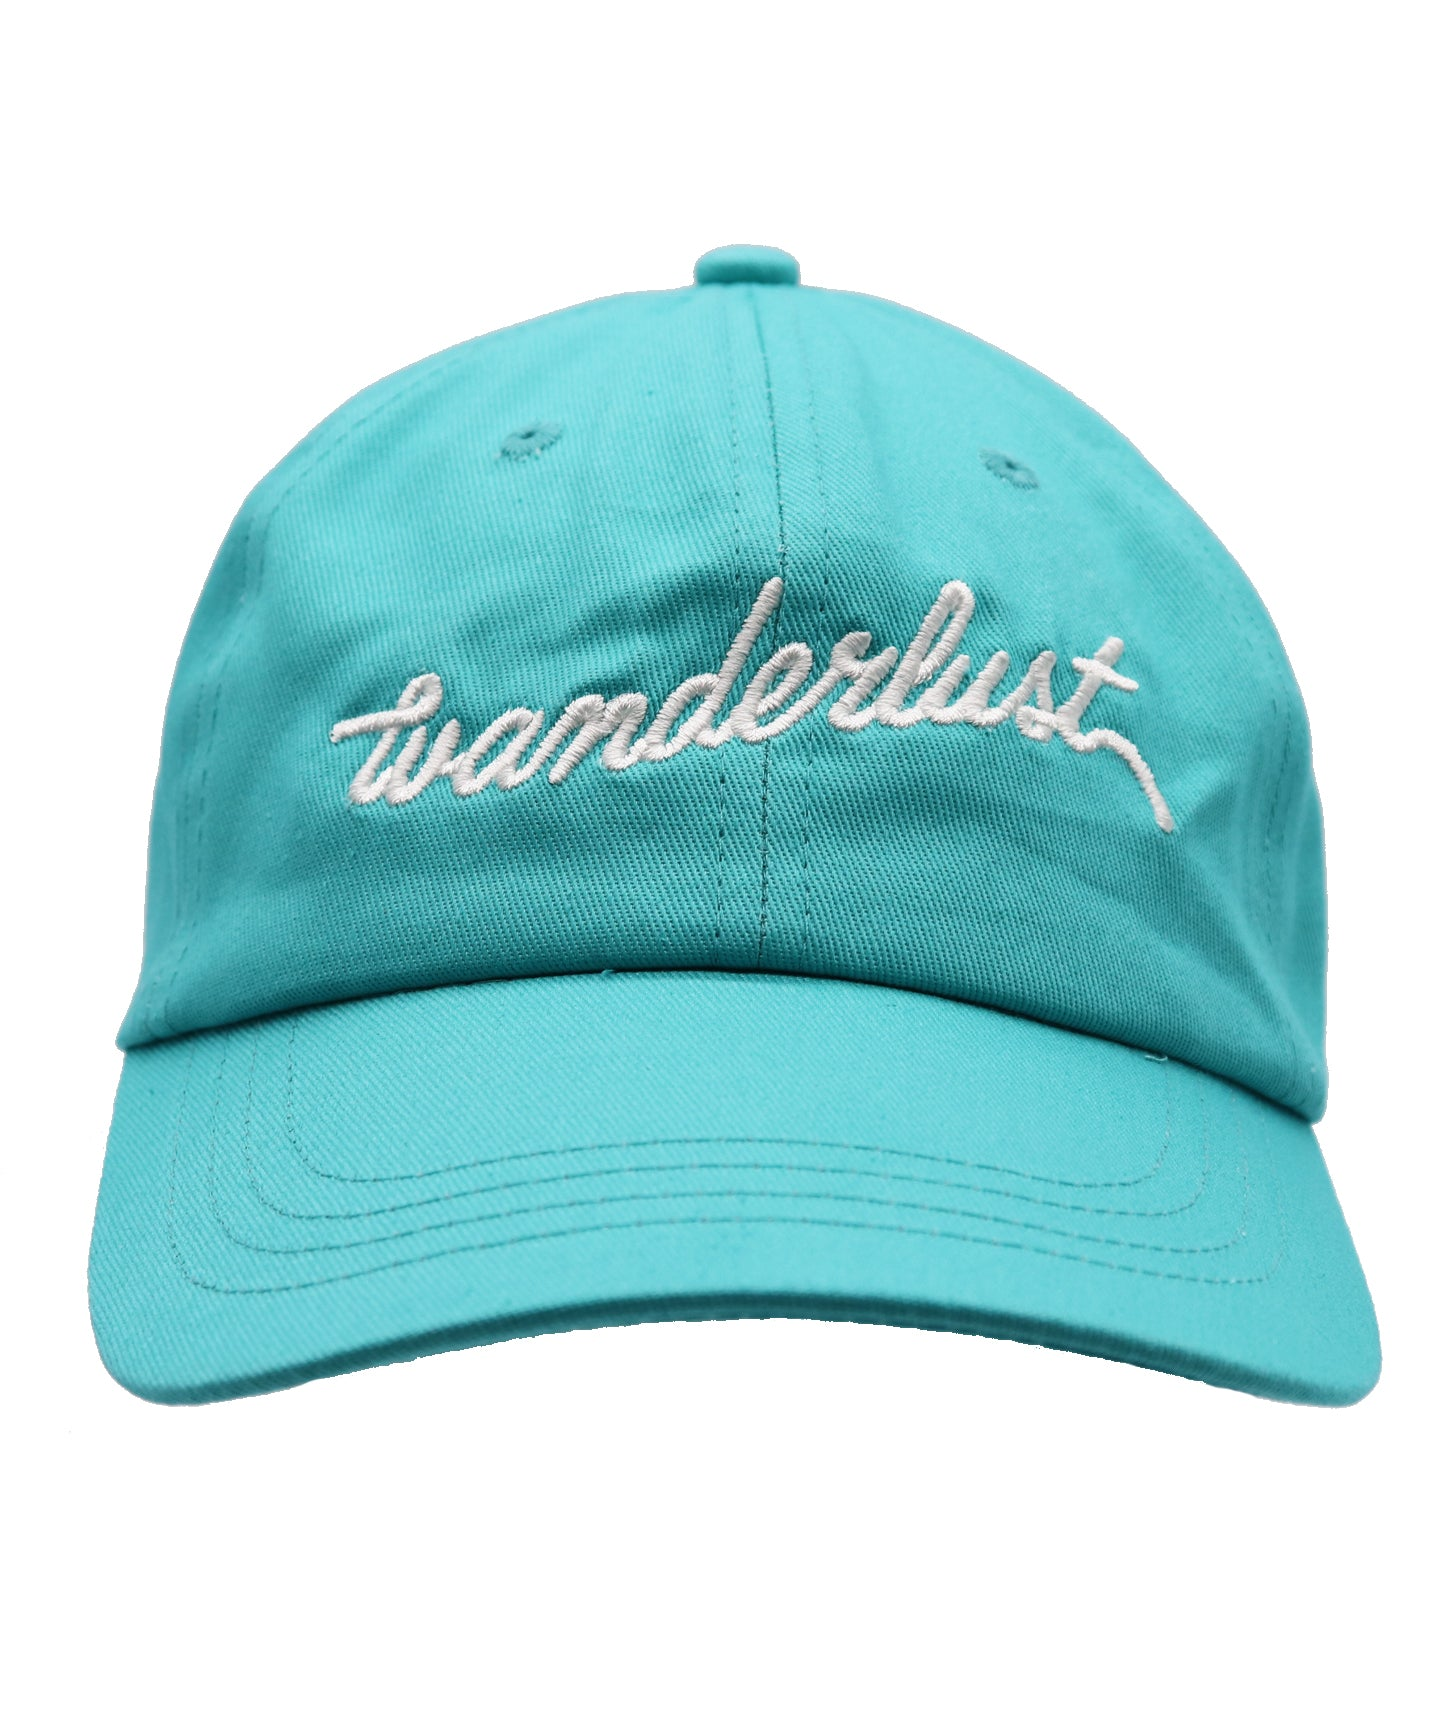 Traveling hat, wanderlust hat, wander hat, teal blue with embroidered white letters spelling out wanderlust across the front. Great fun hat for traveling individuals. Love traveling this is the perfect hat. Fun hat, bright hat, teen hat, mens hat, women's hat.